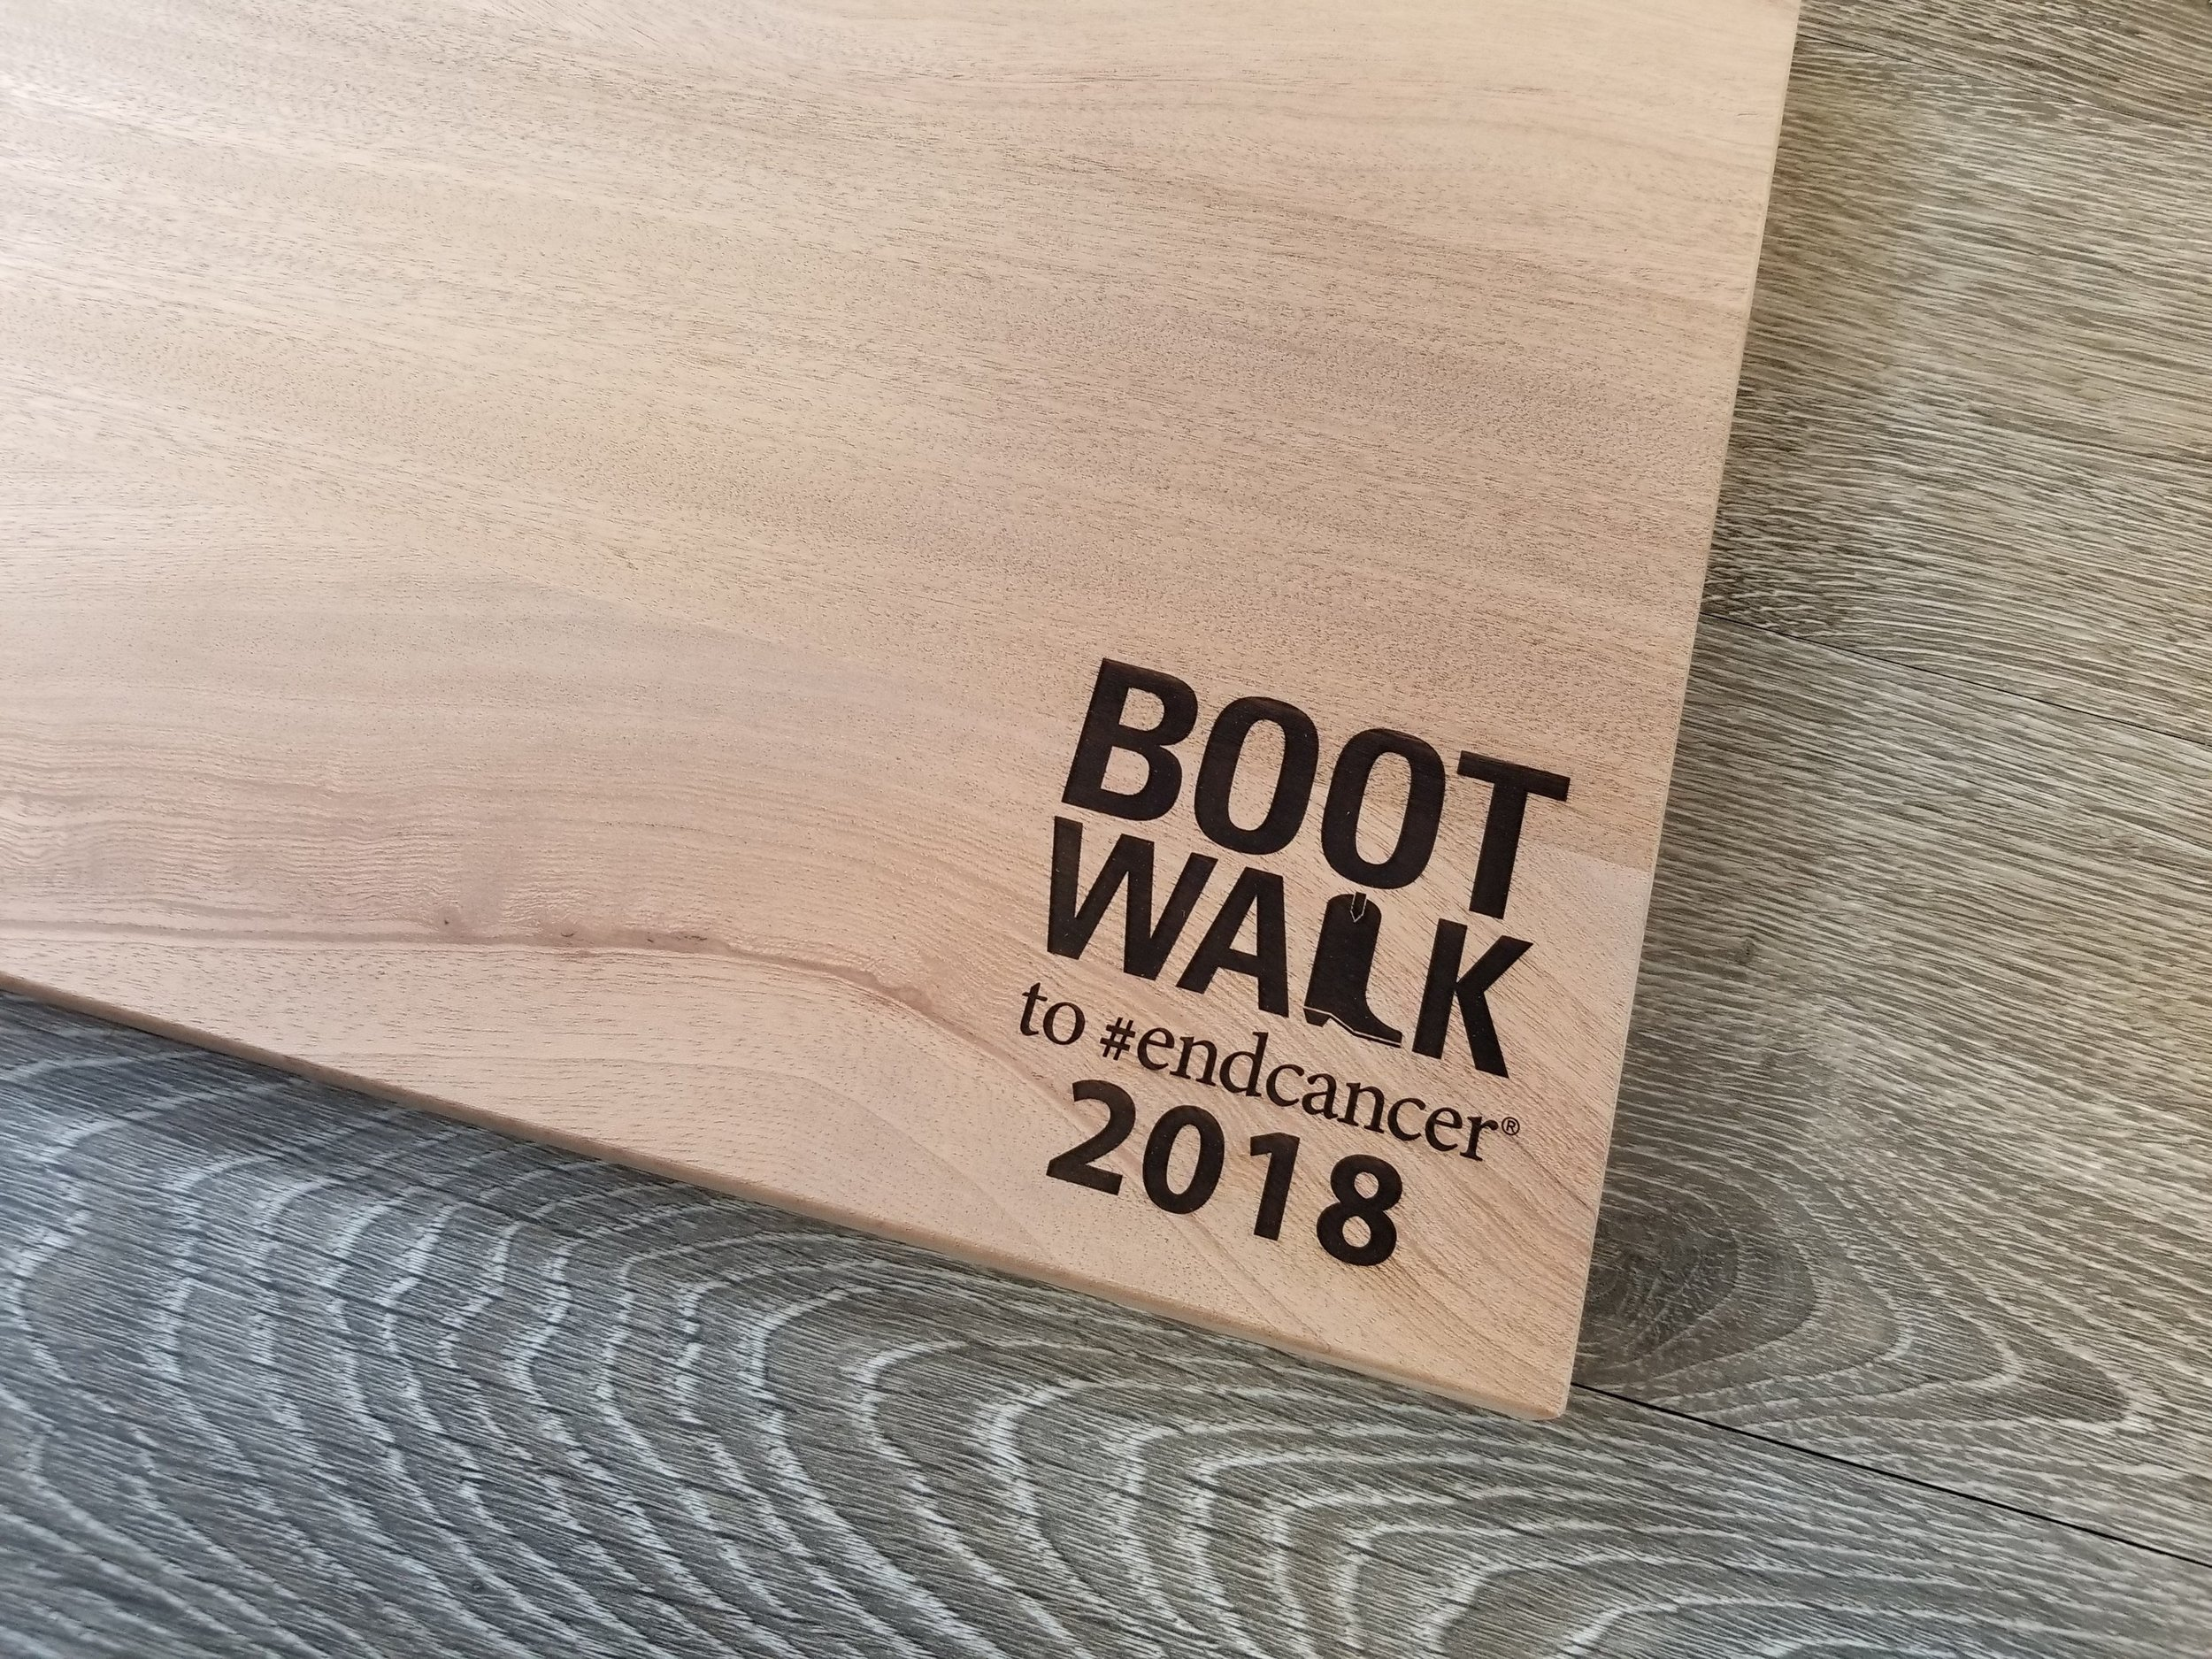 Branded Cutting Board - Branded Engraved Cutting Board - Event Swag - Event Merchandise - Branded Awards - Custom Trophies - Engrave It Houston